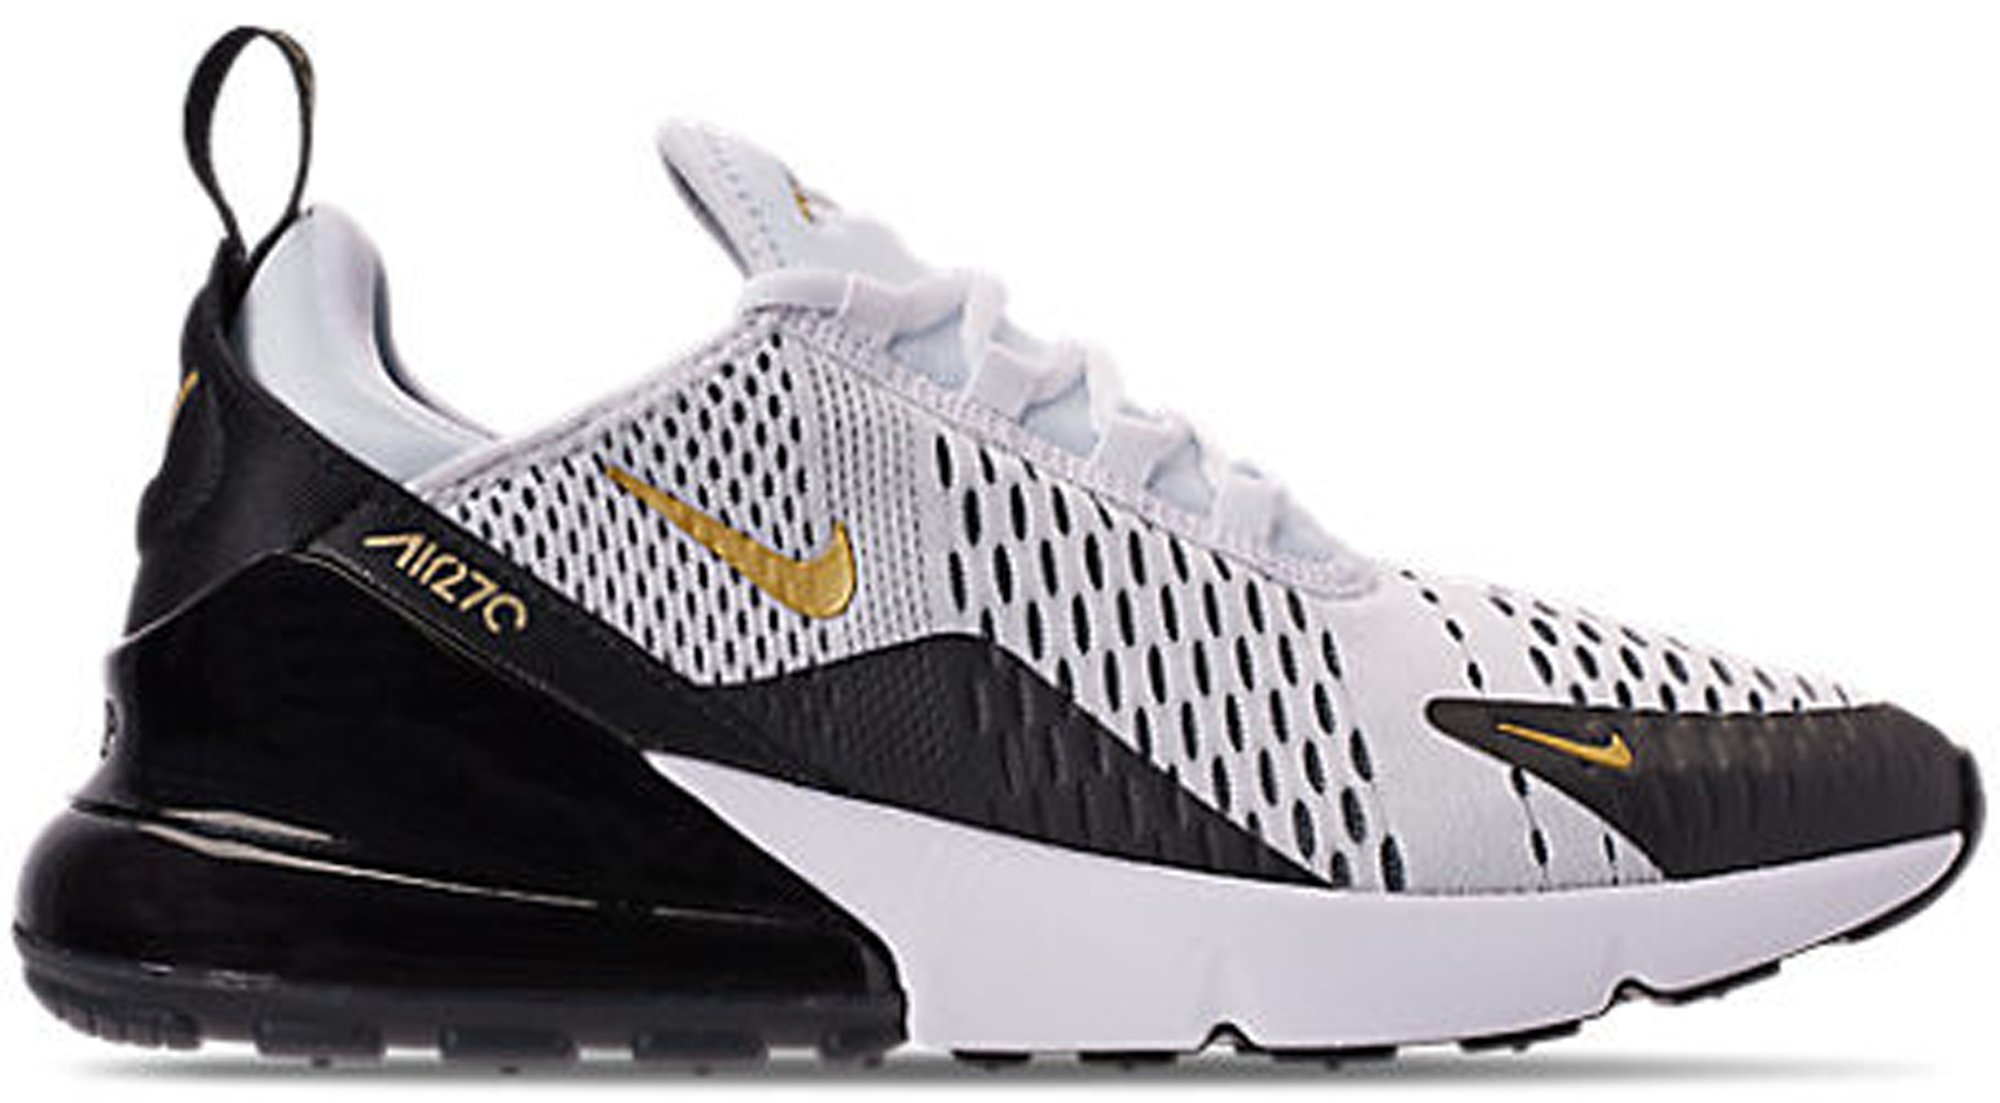 Air Max 270 White Metallic Gold Black